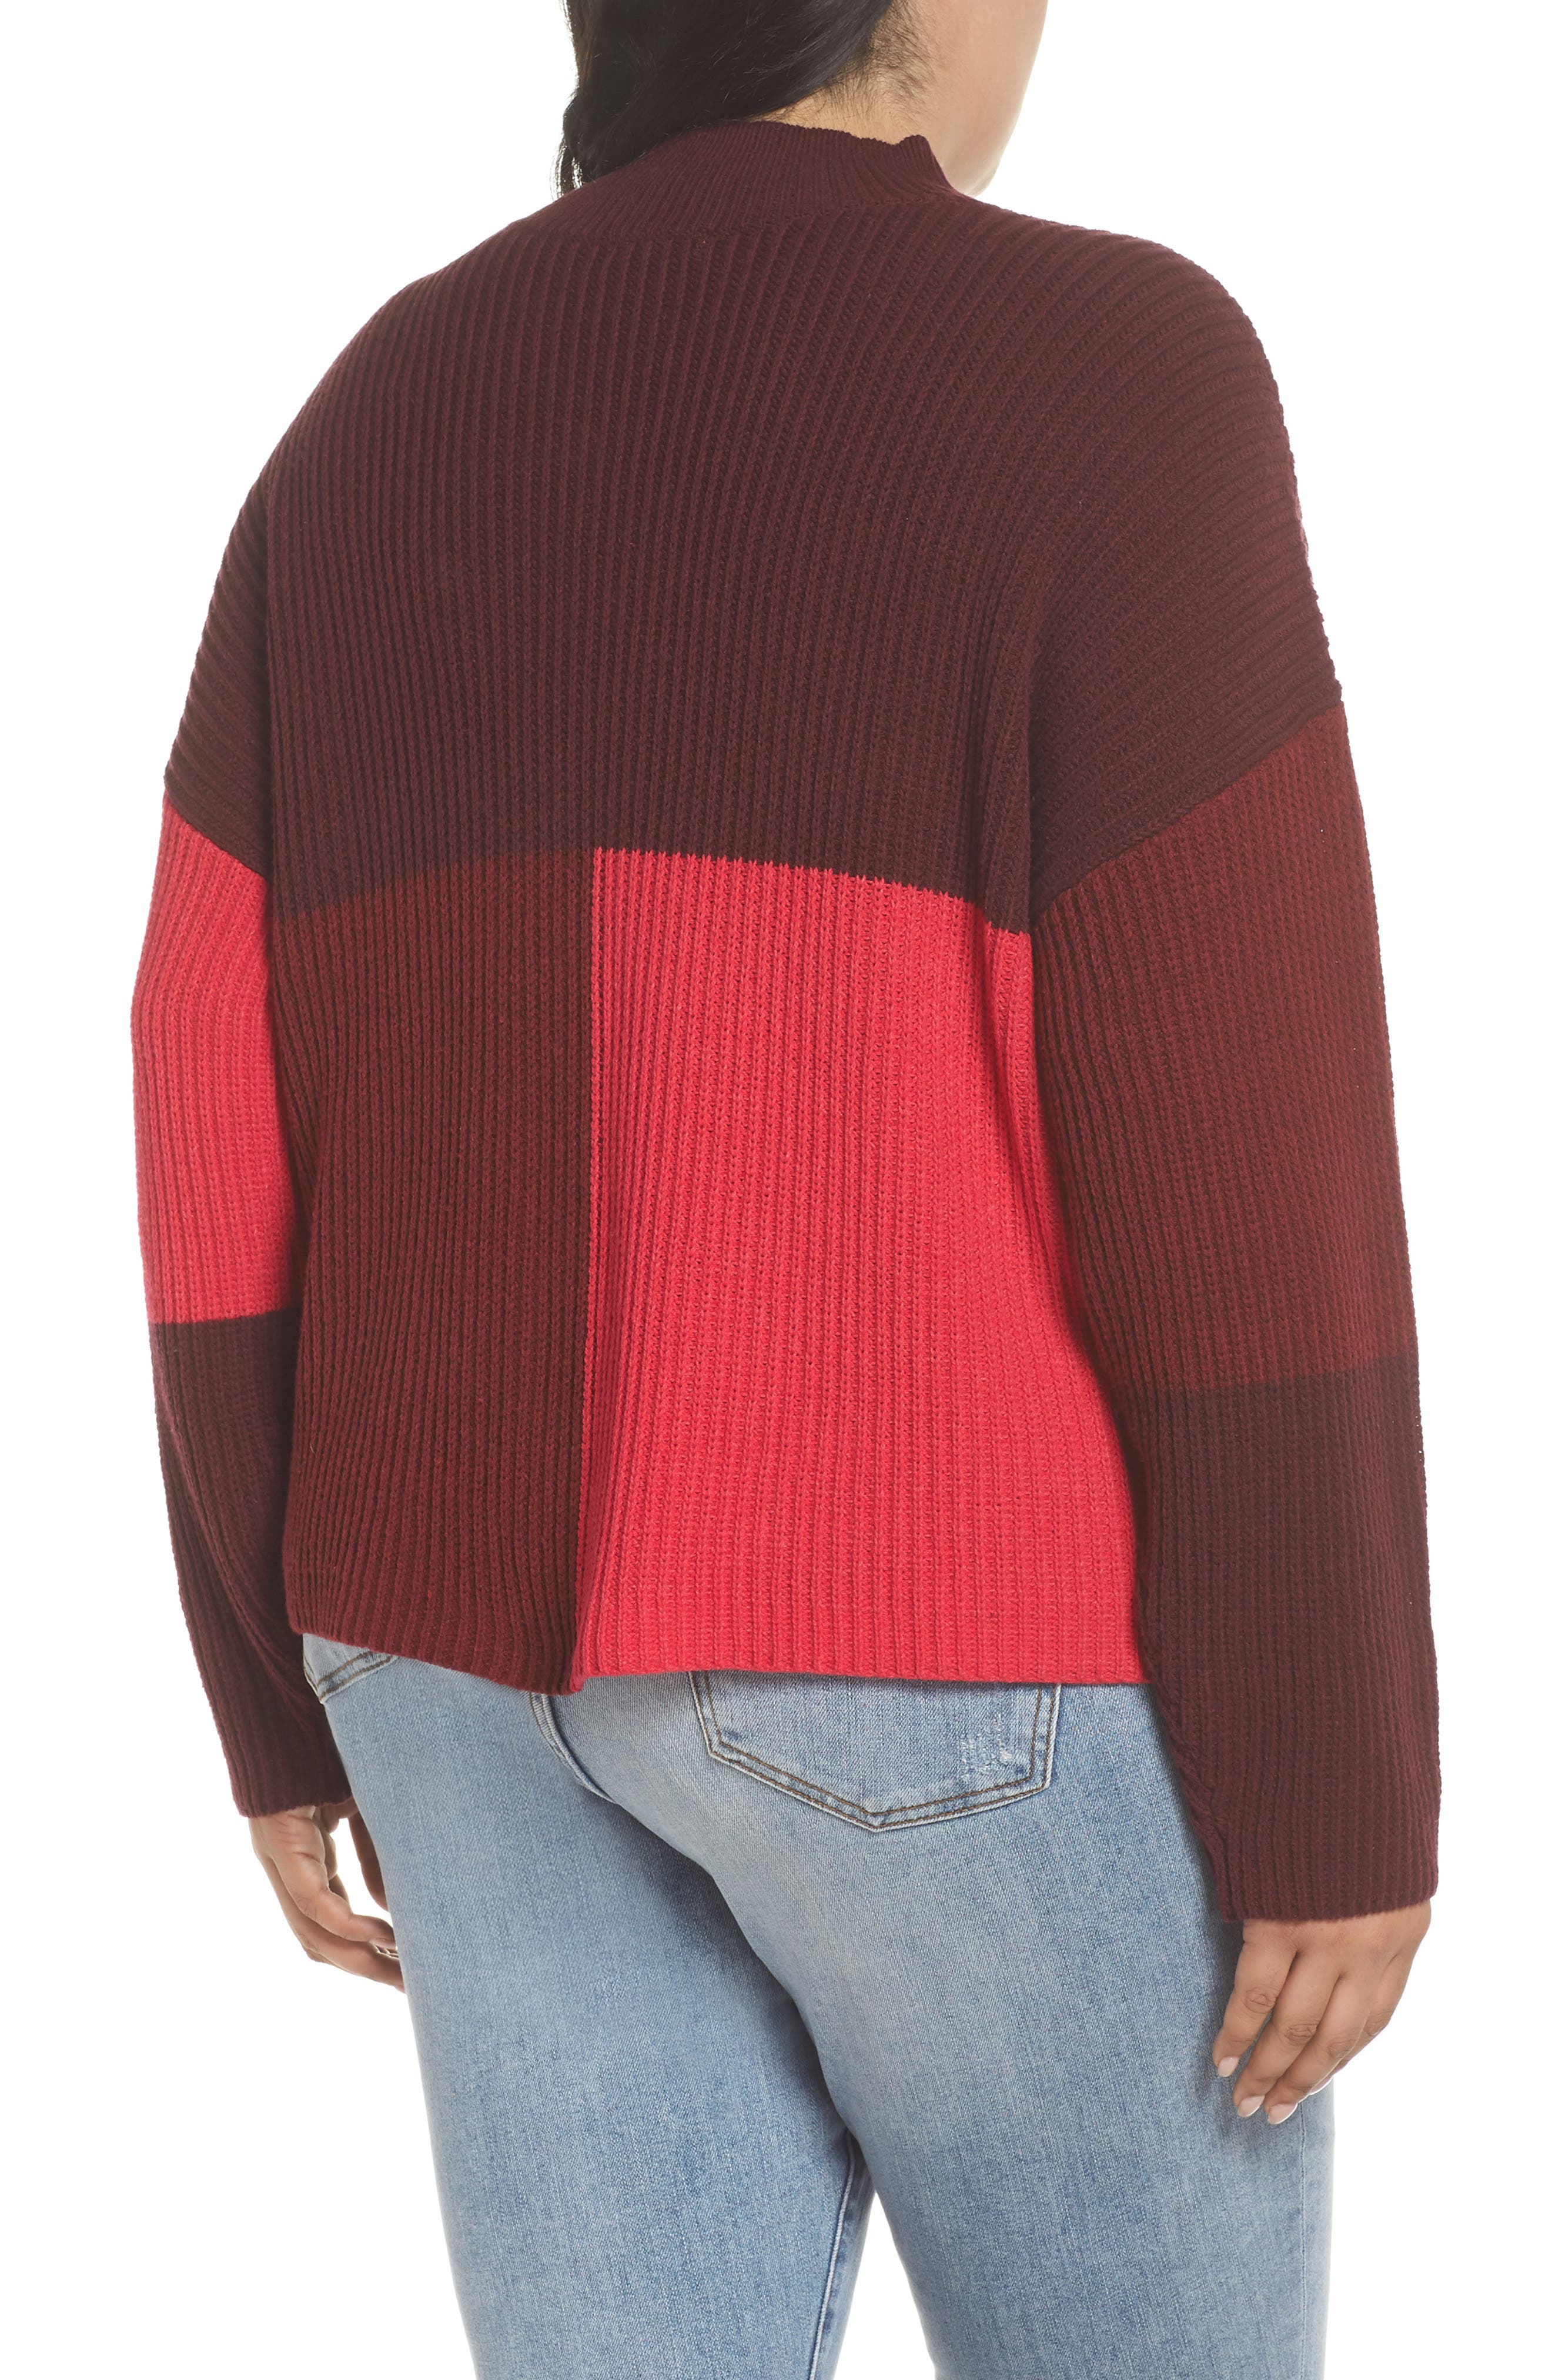 Mock Neck Colorblock Sweater,                             Alternate thumbnail 8, color,                             RED RUMBA COLORBLOCK